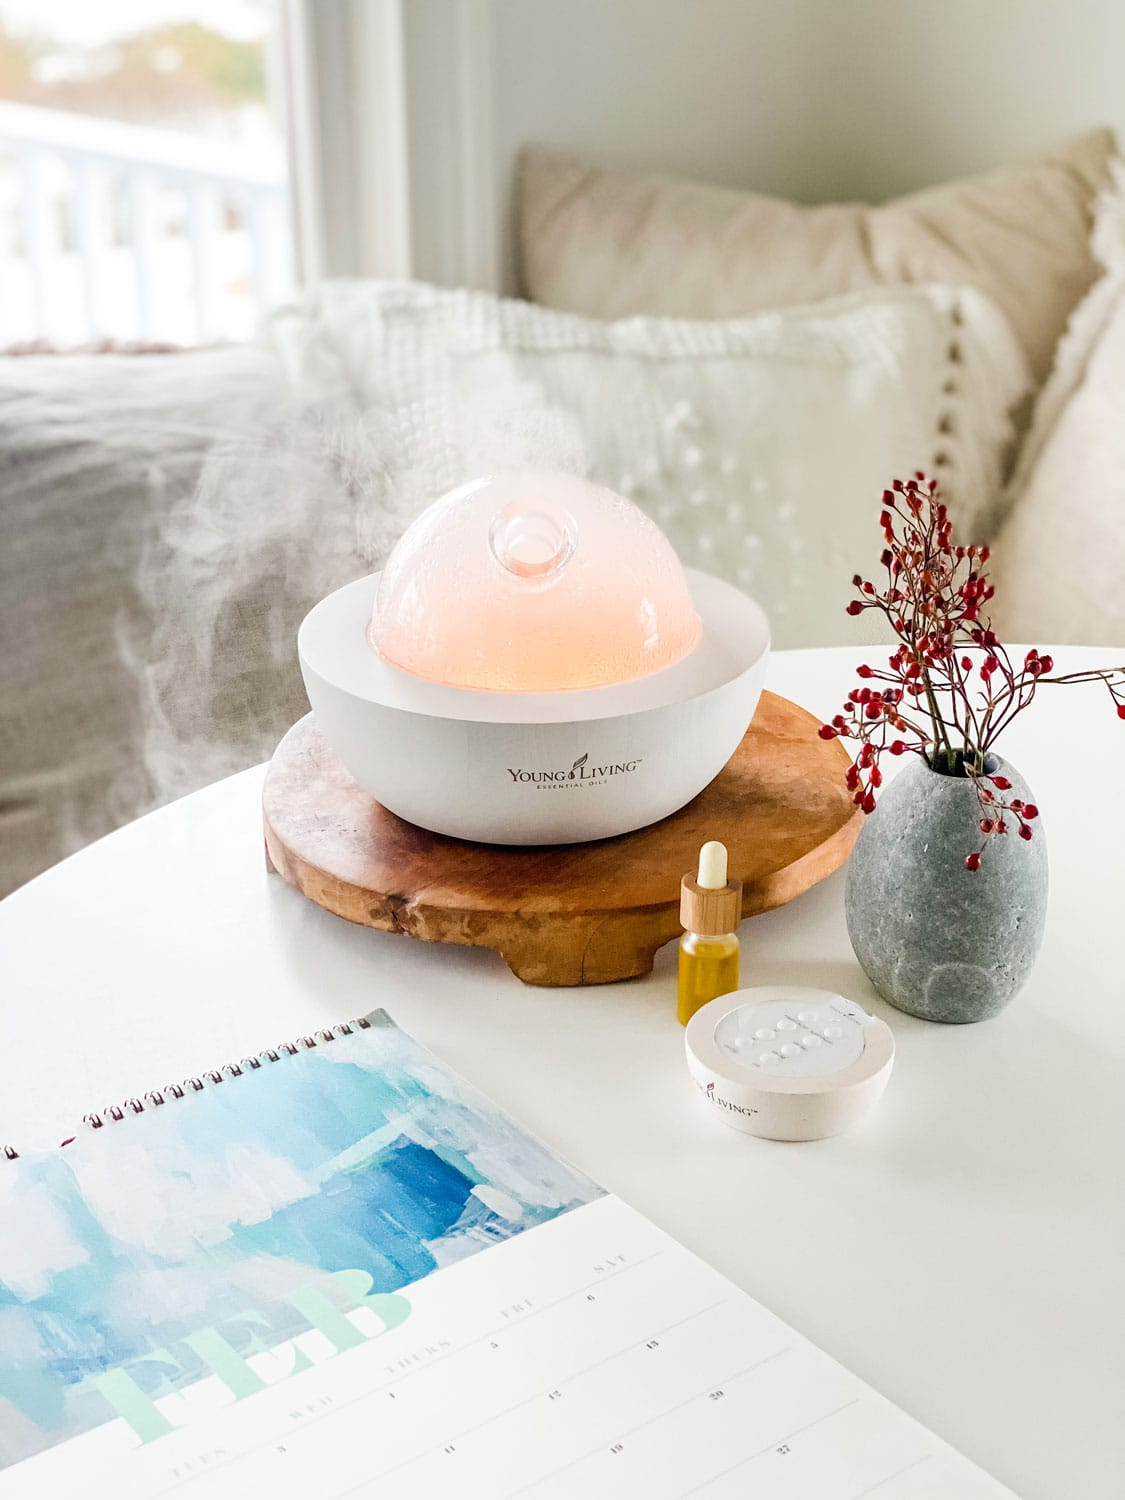 Aria diffuser on table